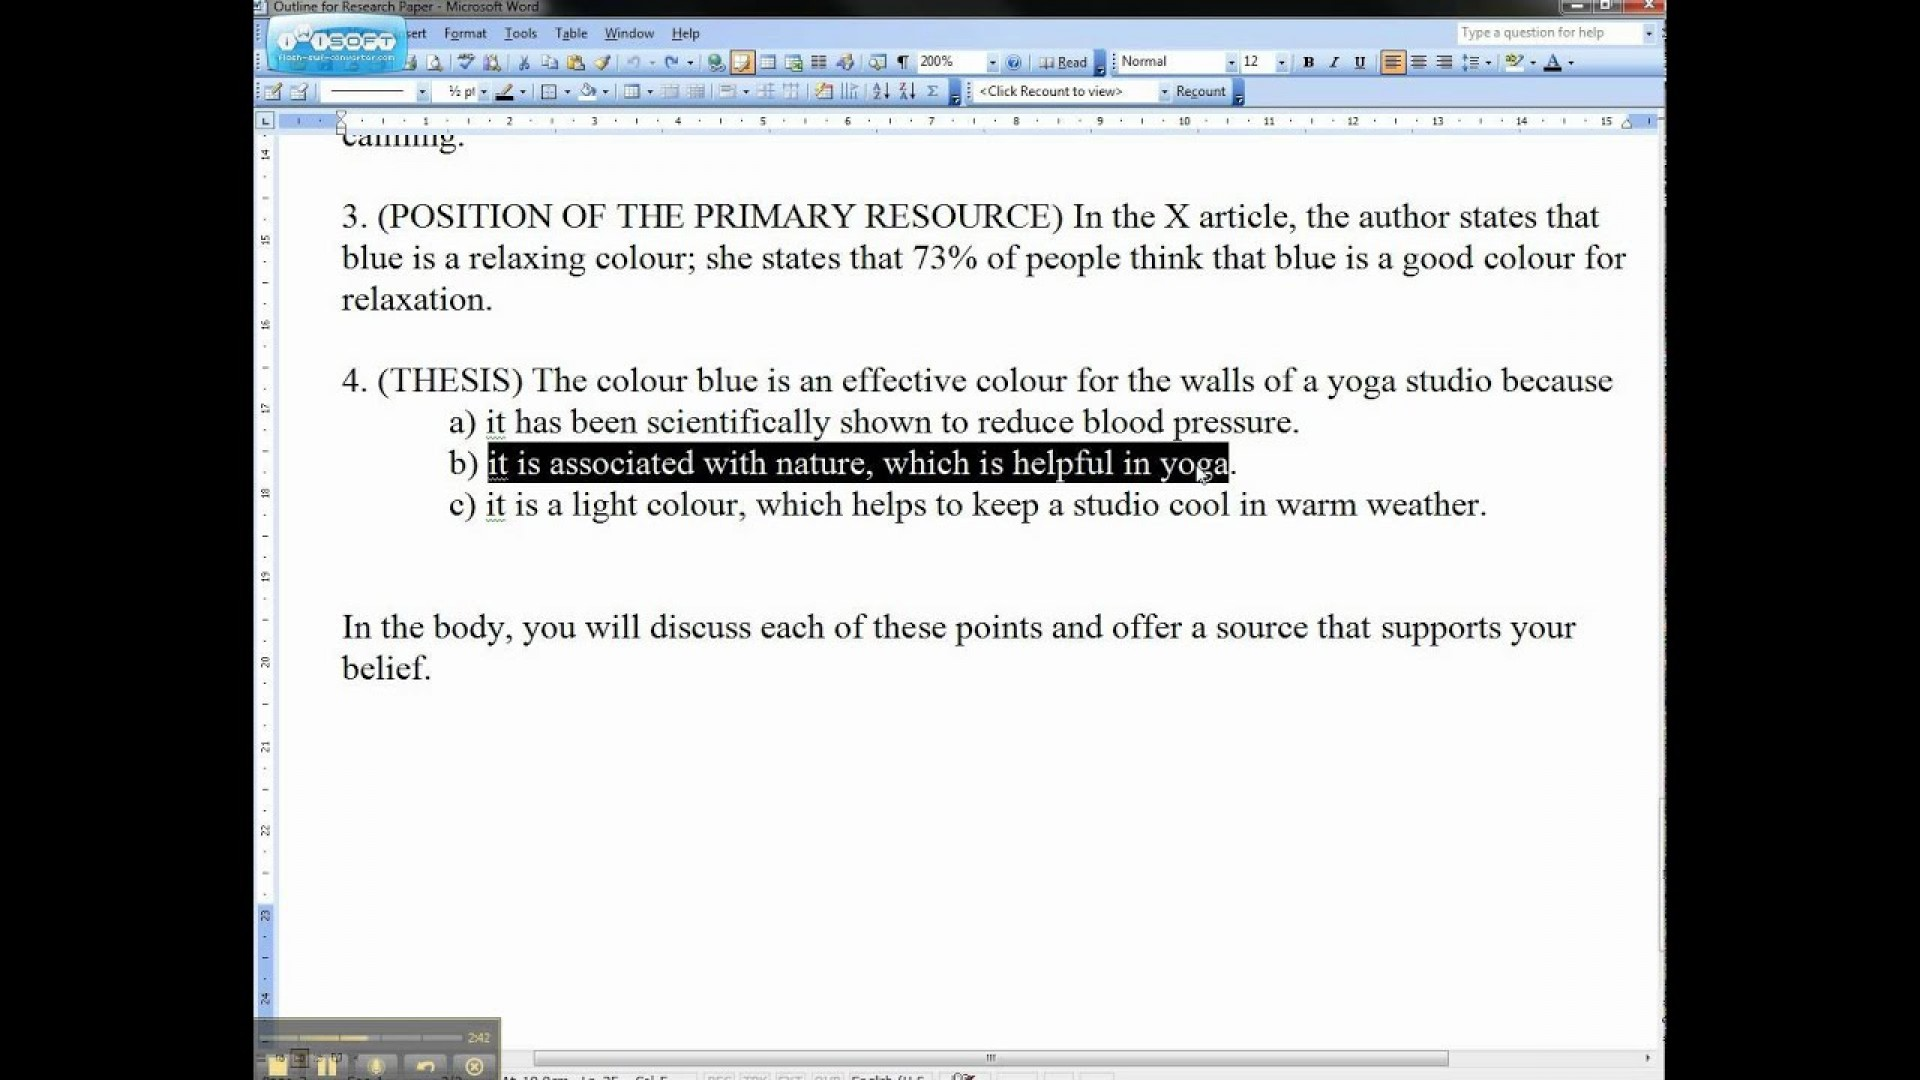 025 Thesis Statement Essay Maxresdefault Stirring Descriptive Examples Definition Structure 1920